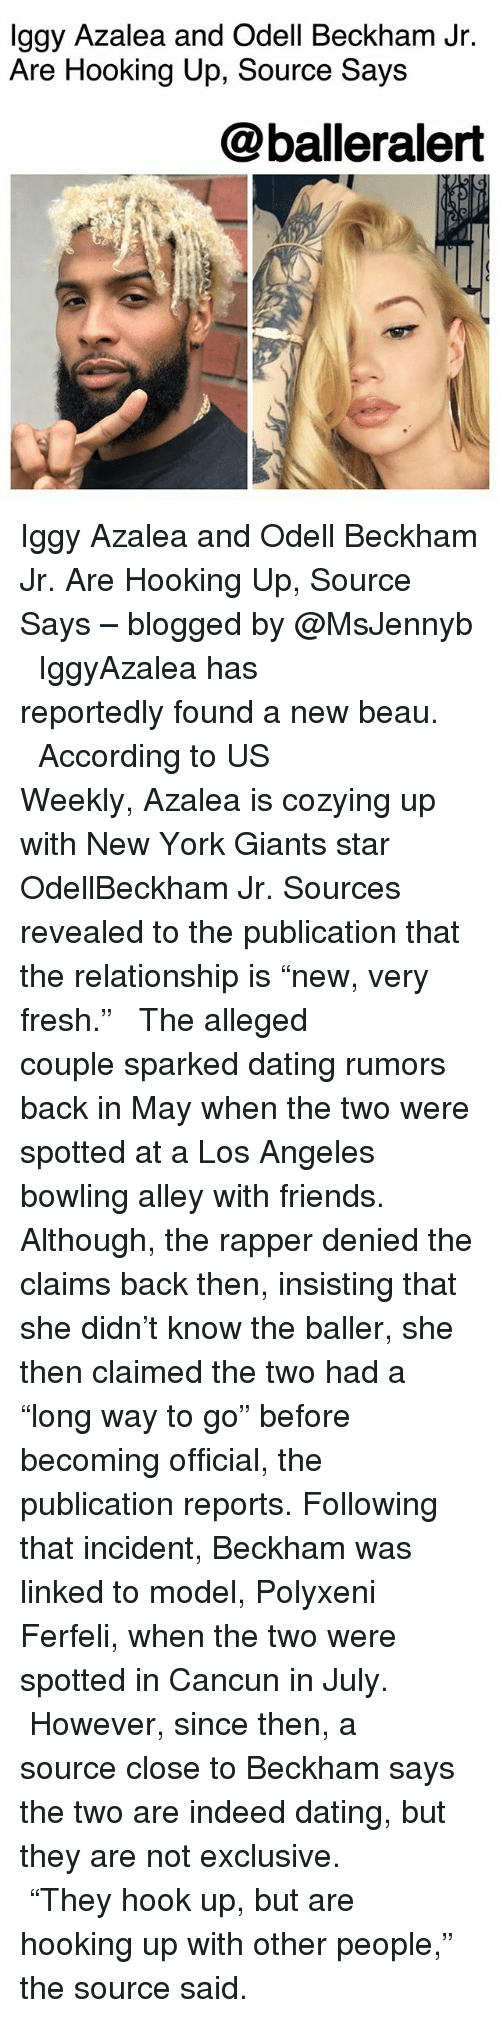 "Dating, Fresh, and Friends: lggy Azalea and Odell Beckham Jr.  Are Hooking Up, Source Says  @balleralert Iggy Azalea and Odell Beckham Jr. Are Hooking Up, Source Says – blogged by @MsJennyb ⠀⠀⠀⠀⠀⠀⠀ ⠀⠀⠀⠀⠀⠀⠀ IggyAzalea has reportedly found a new beau. ⠀⠀⠀⠀⠀⠀⠀ ⠀⠀⠀⠀⠀⠀⠀ According to US Weekly, Azalea is cozying up with New York Giants star OdellBeckham Jr. Sources revealed to the publication that the relationship is ""new, very fresh."" ⠀⠀⠀⠀⠀⠀⠀ ⠀⠀⠀⠀⠀⠀⠀ The alleged couple sparked dating rumors back in May when the two were spotted at a Los Angeles bowling alley with friends. Although, the rapper denied the claims back then, insisting that she didn't know the baller, she then claimed the two had a ""long way to go"" before becoming official, the publication reports. Following that incident, Beckham was linked to model, Polyxeni Ferfeli, when the two were spotted in Cancun in July. ⠀⠀⠀⠀⠀⠀⠀ ⠀⠀⠀⠀⠀⠀⠀ However, since then, a source close to Beckham says the two are indeed dating, but they are not exclusive. ⠀⠀⠀⠀⠀⠀⠀ ⠀⠀⠀⠀⠀⠀⠀ ""They hook up, but are hooking up with other people,"" the source said."